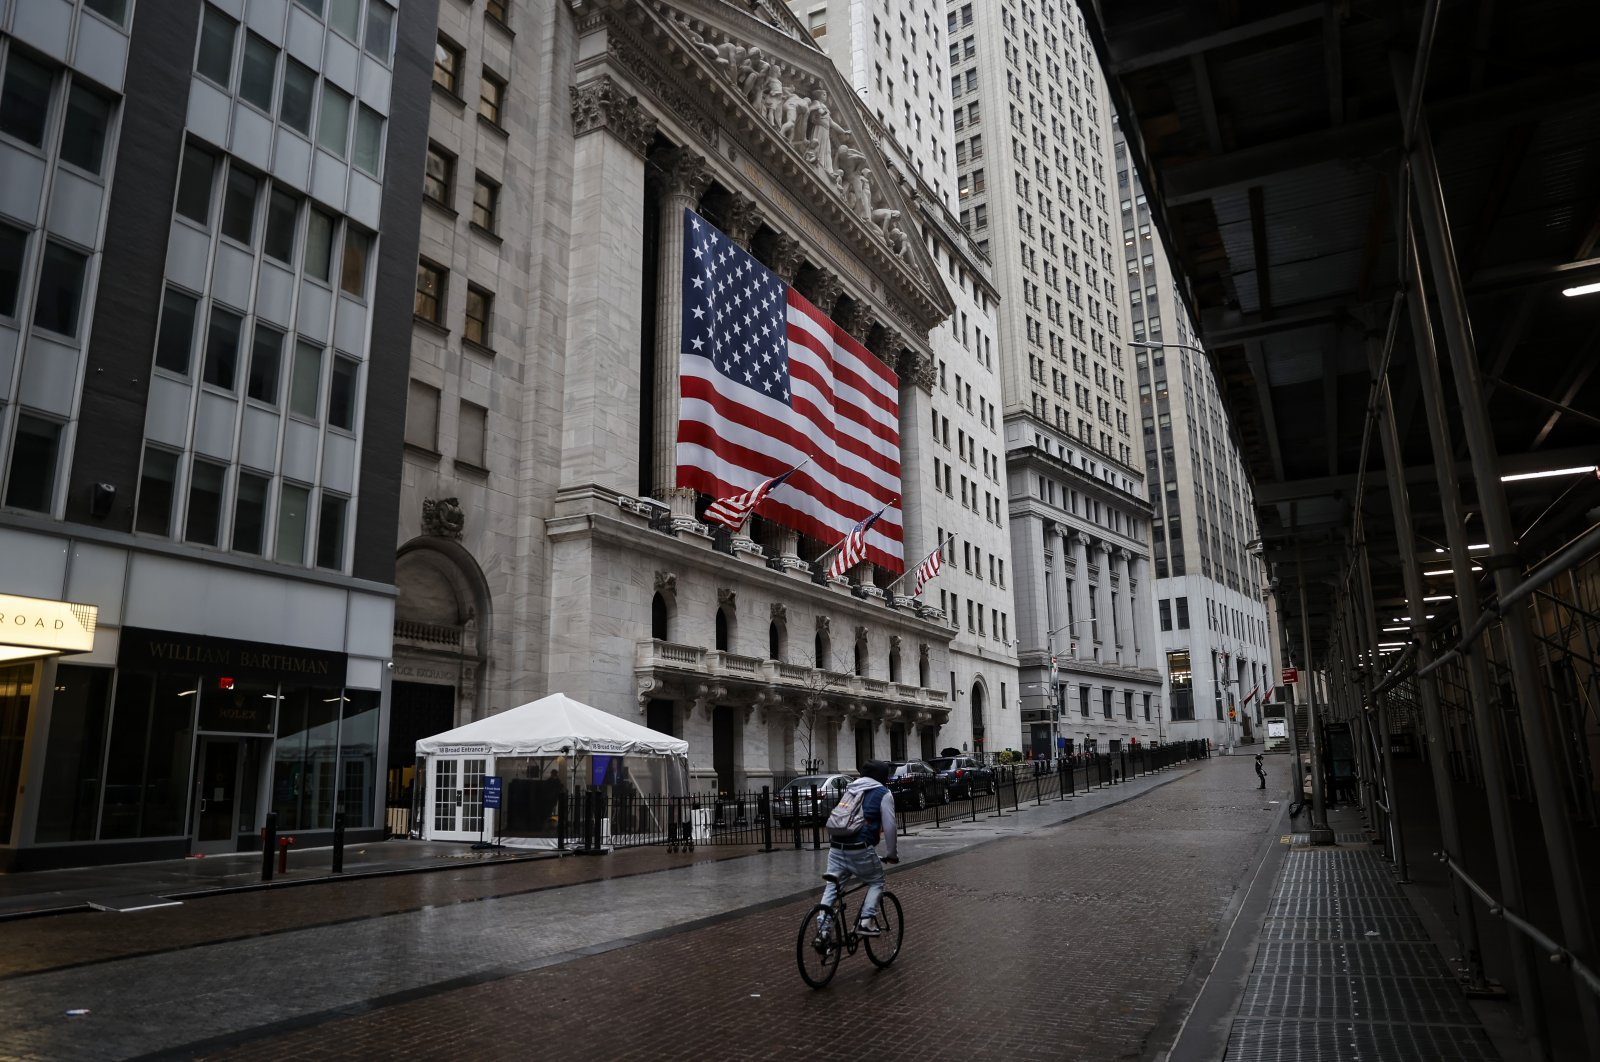 A man rides his bike  in front of  the New York Stock Exchange in New York City, New York, March 23, 2020. (REUTERS Photo)